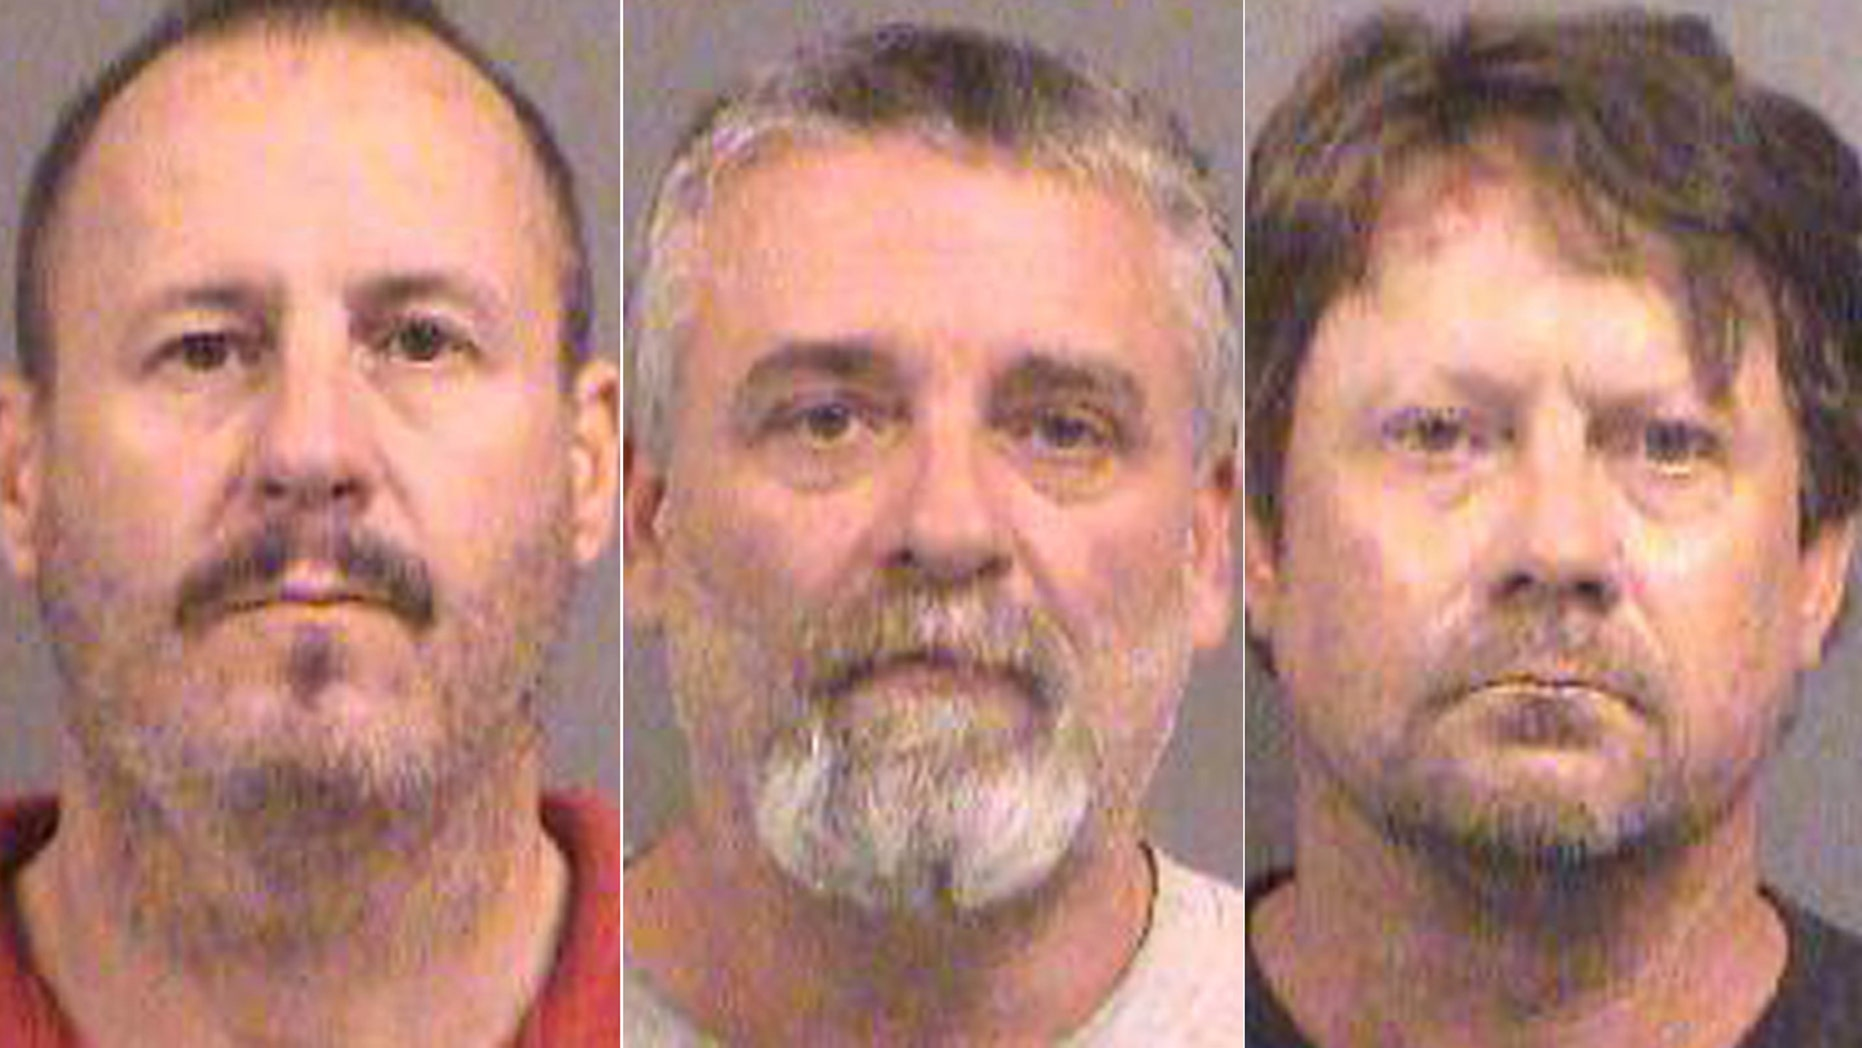 Oct. 14, 2016: These booking photos show, from left, Curtis Allen, Gavin Wright, and Patrick Eurgene Stein. All three men have been charged with plotting to bomb an apartment building filled with Somali immigrants in Garden City, Kan.